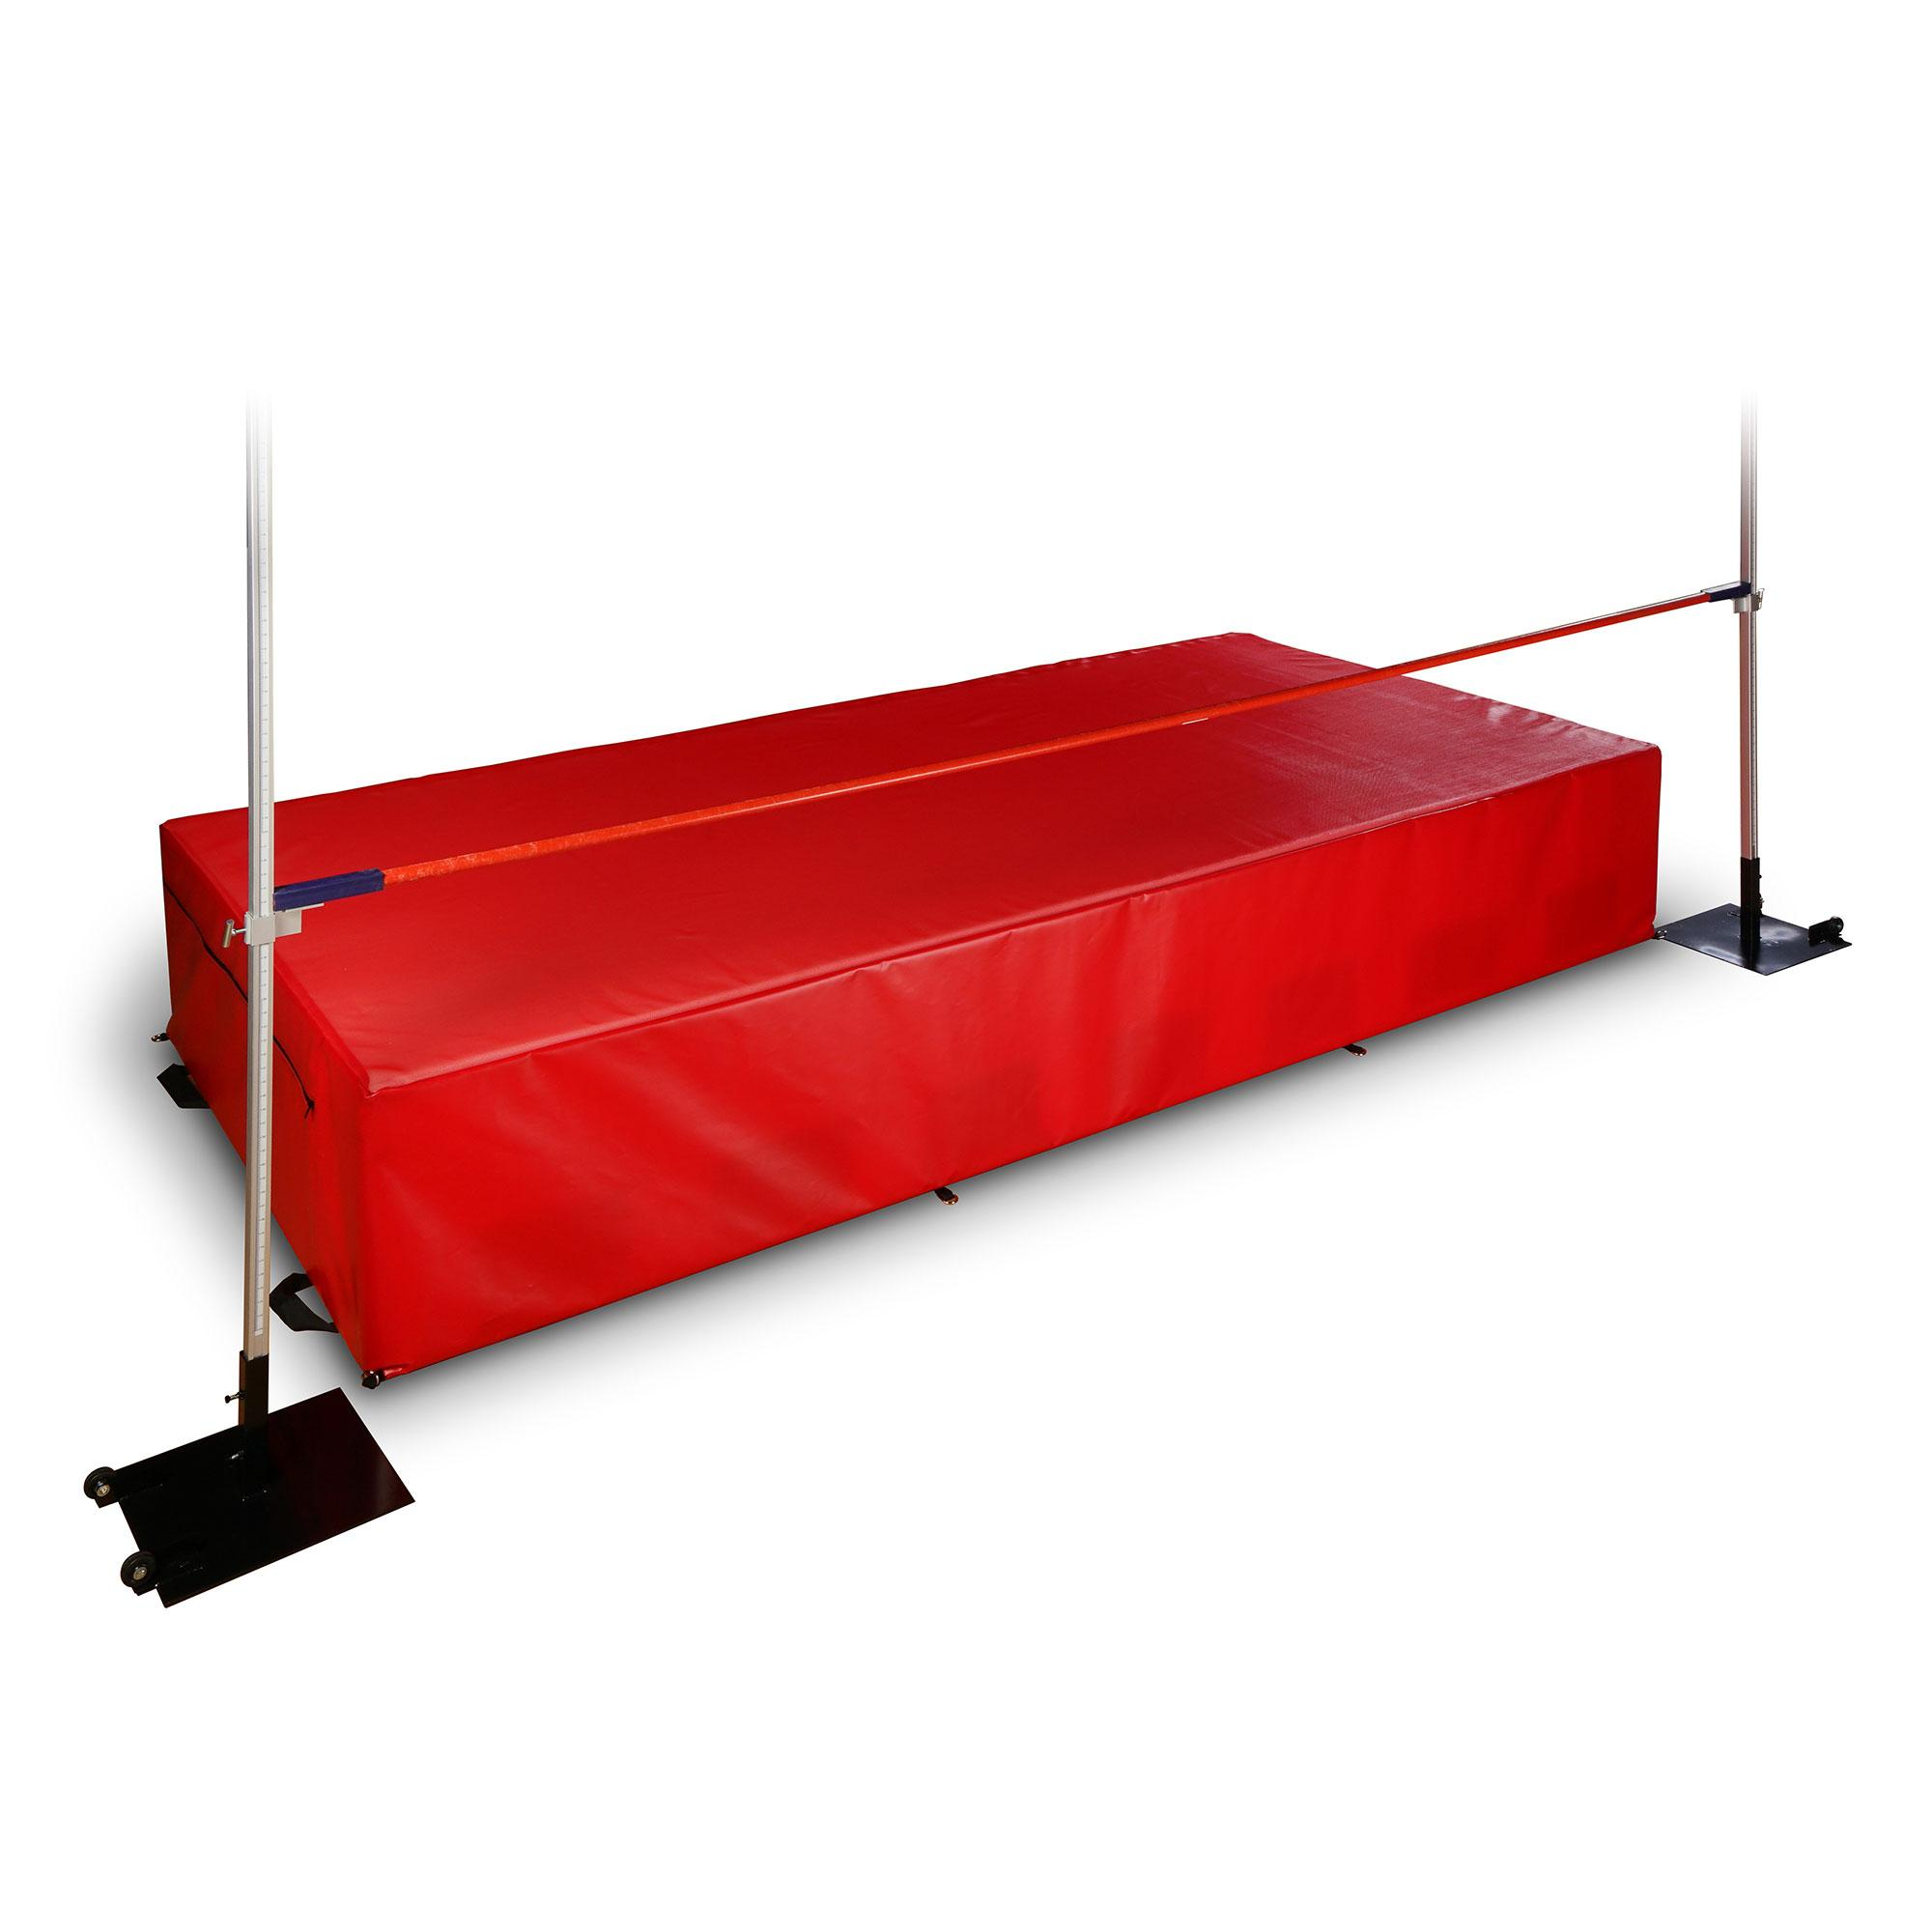 6' x 12' High Jump Value Package